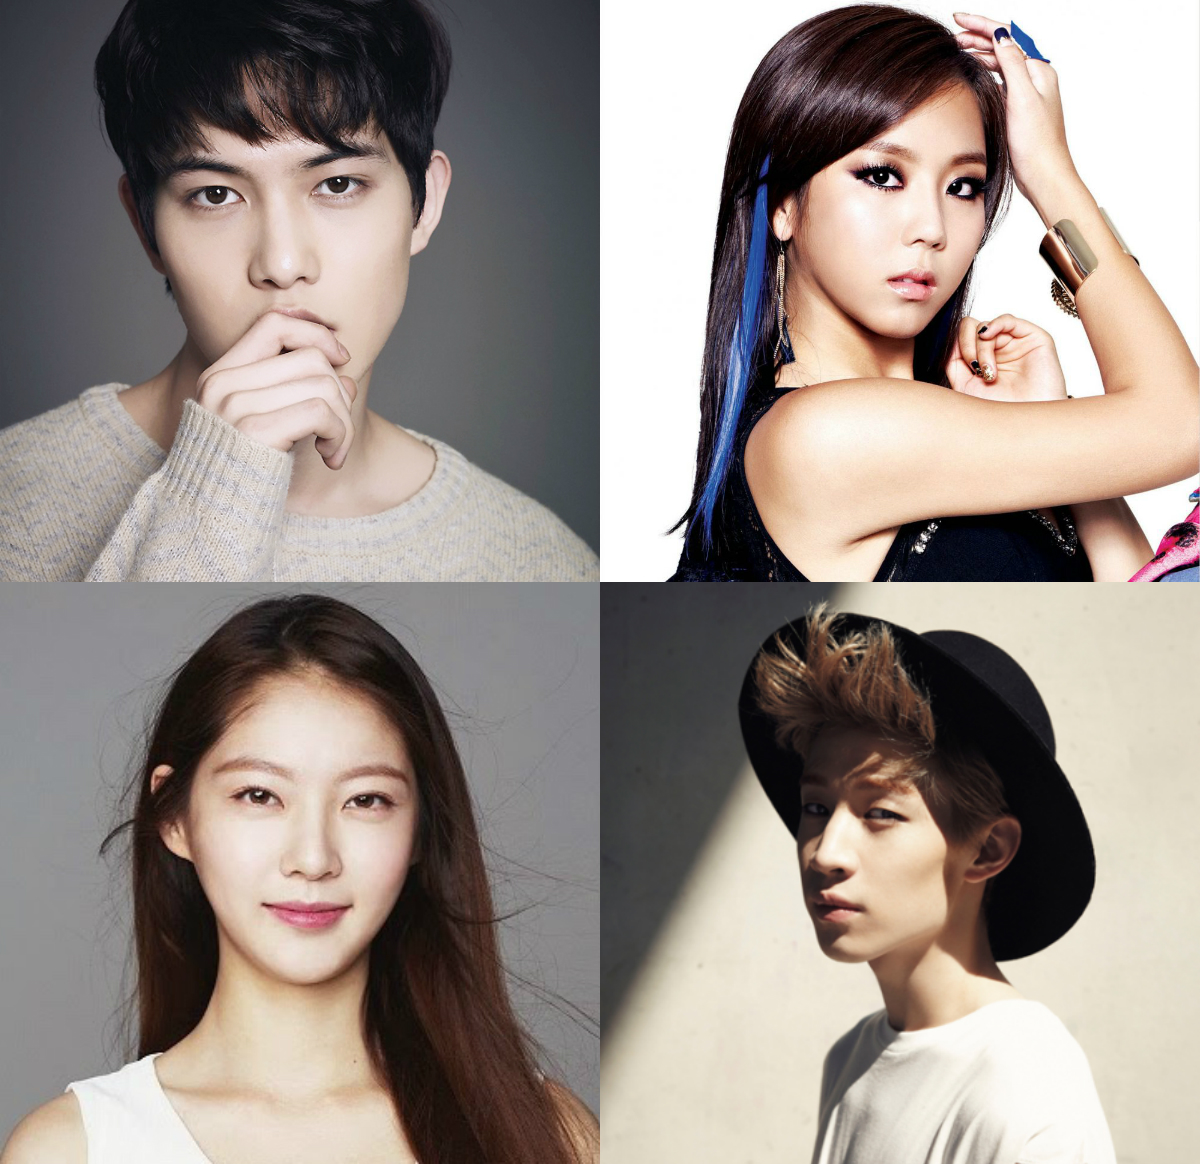 We Got Married New Cast Members Choose Their Spouses